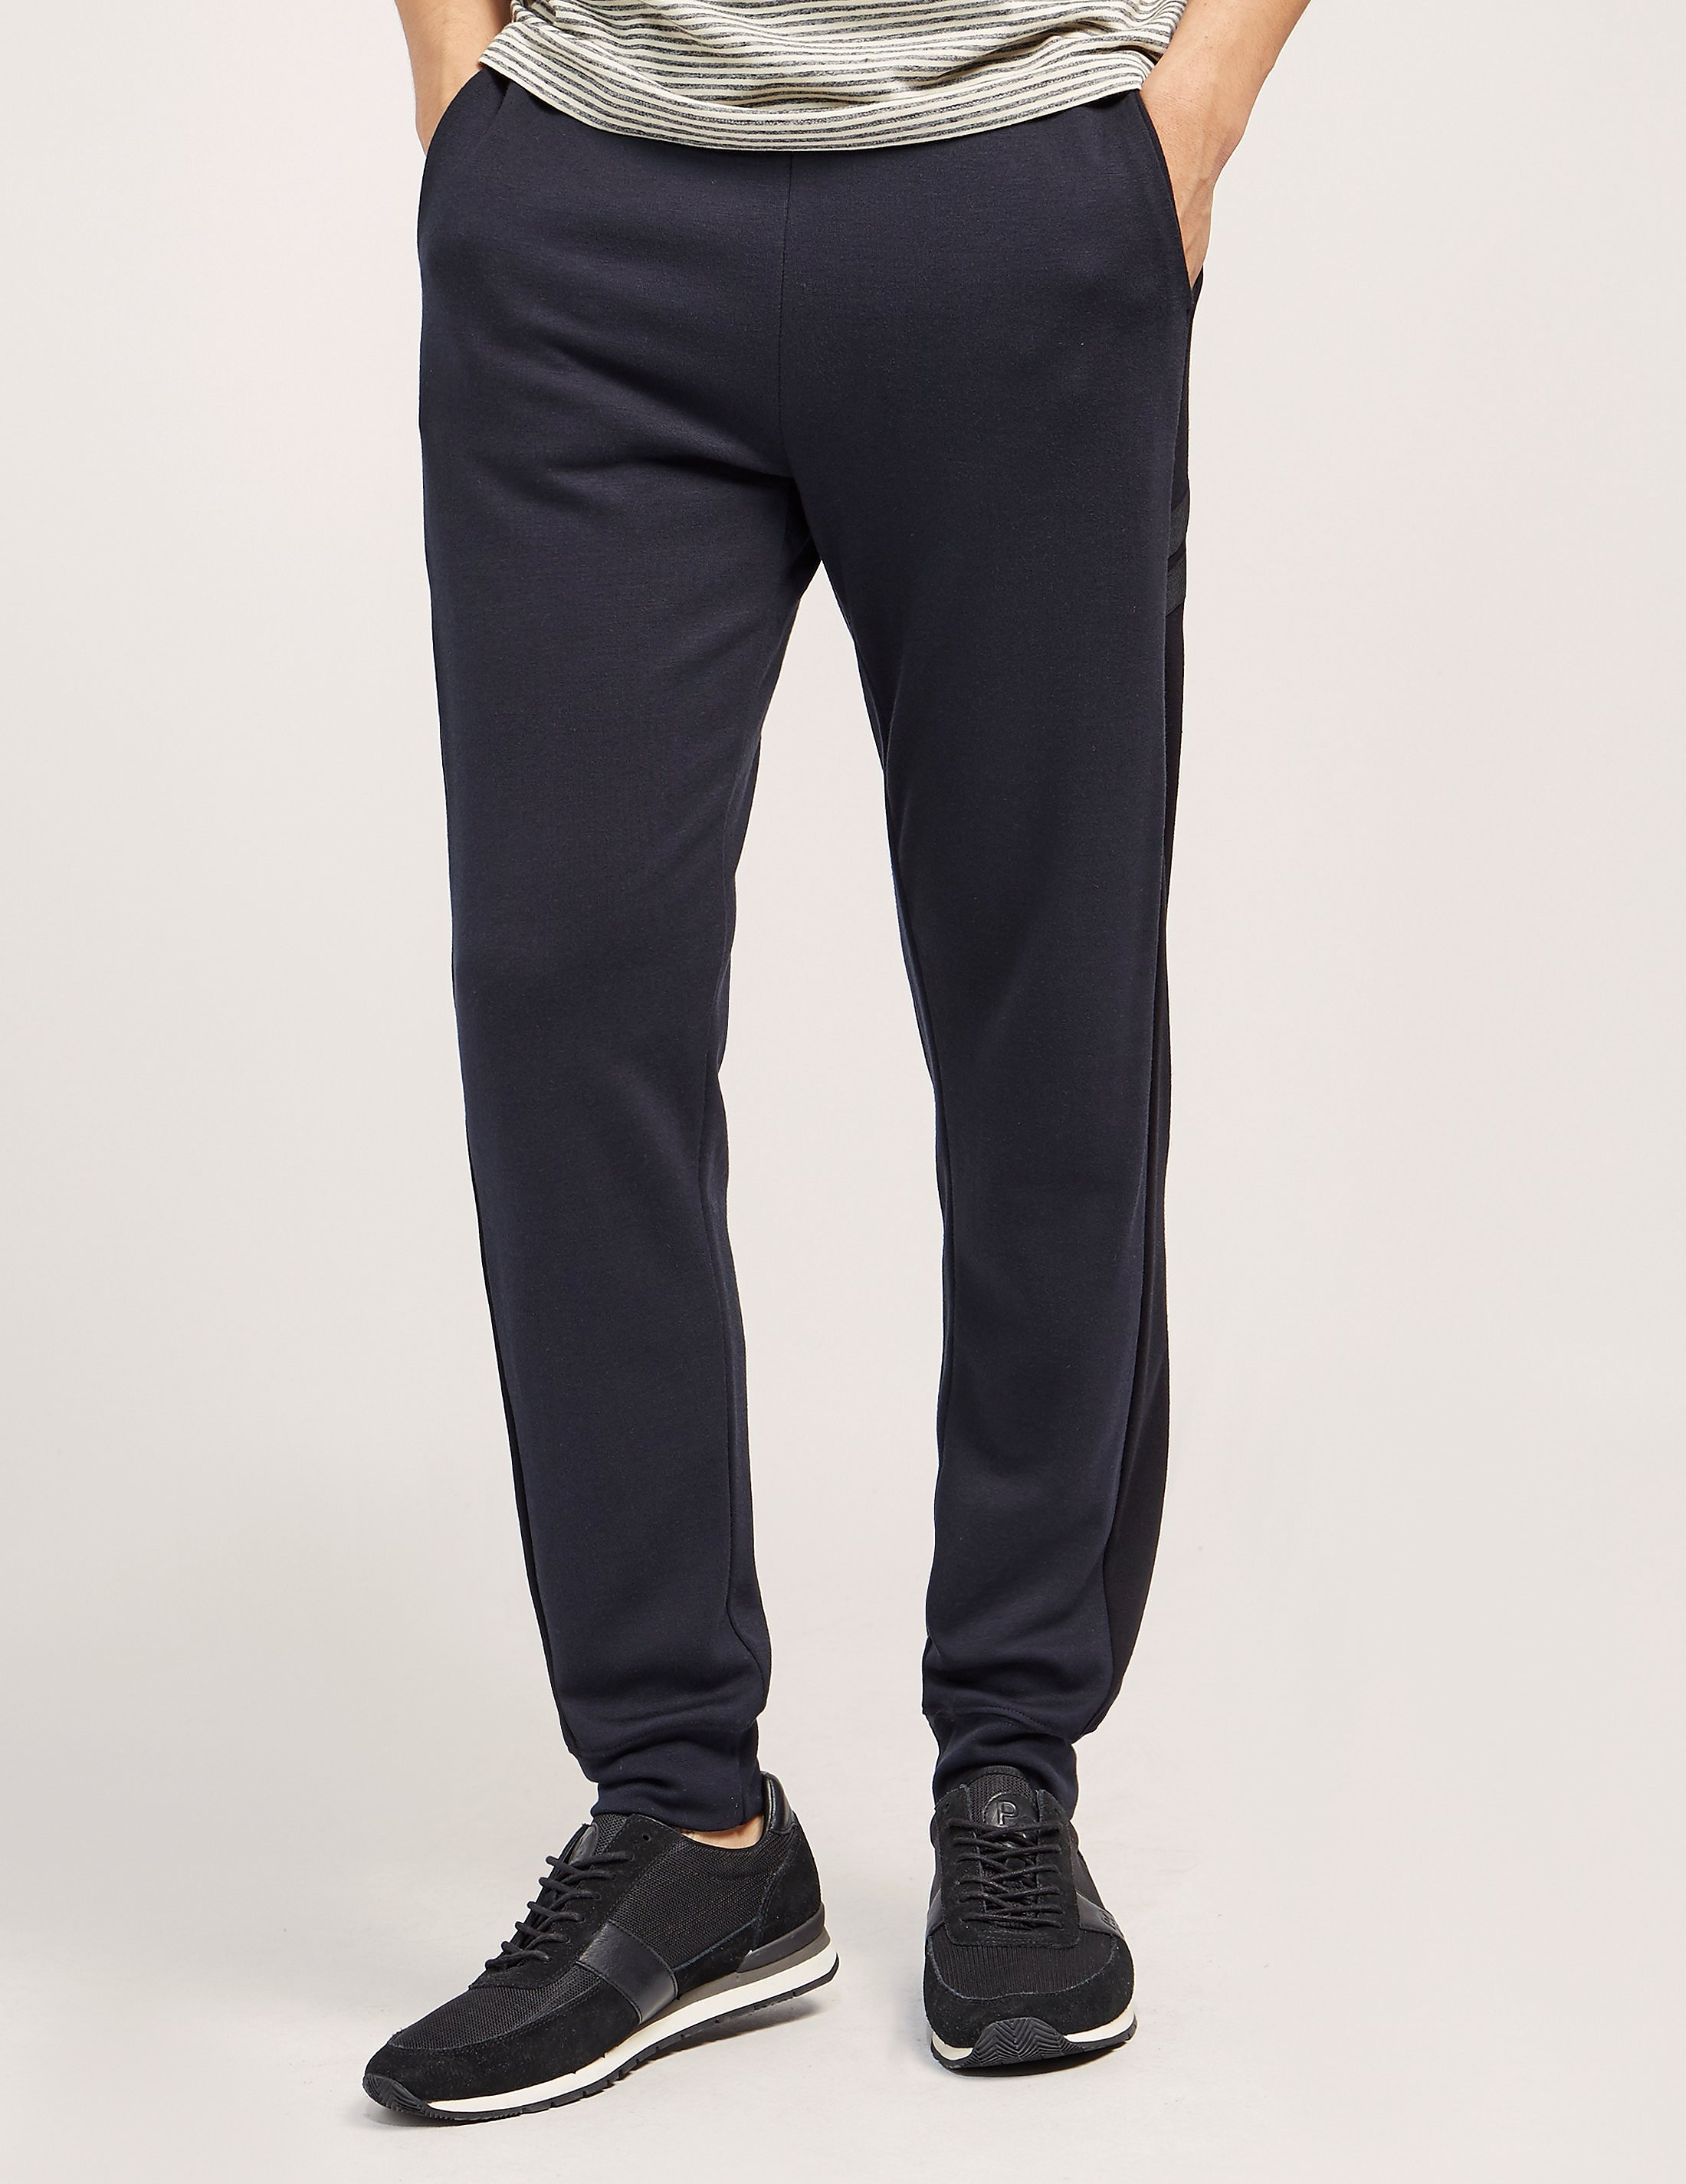 Paul Smith Contrast Cuffed Track Pants